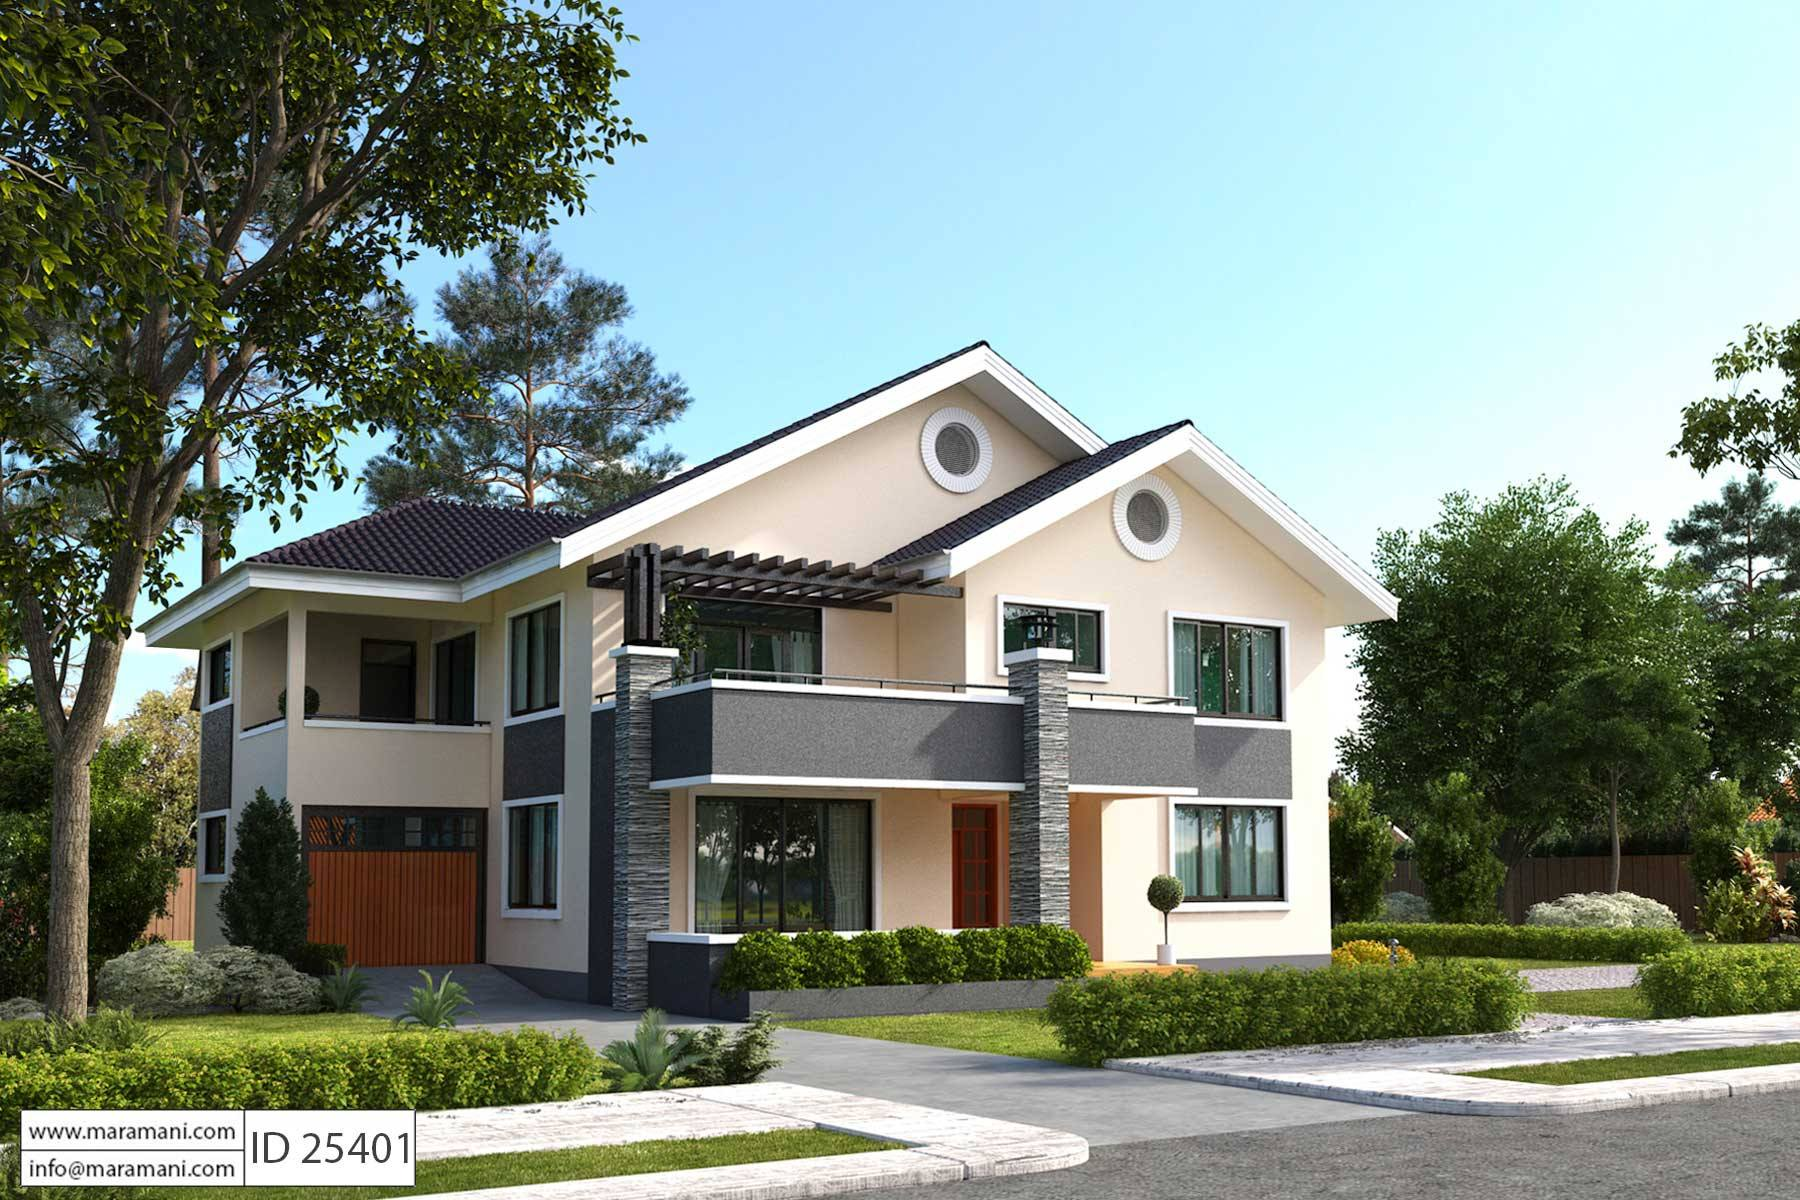 5 bedroom house plan id 25401 floor plans by maramani House deaigns